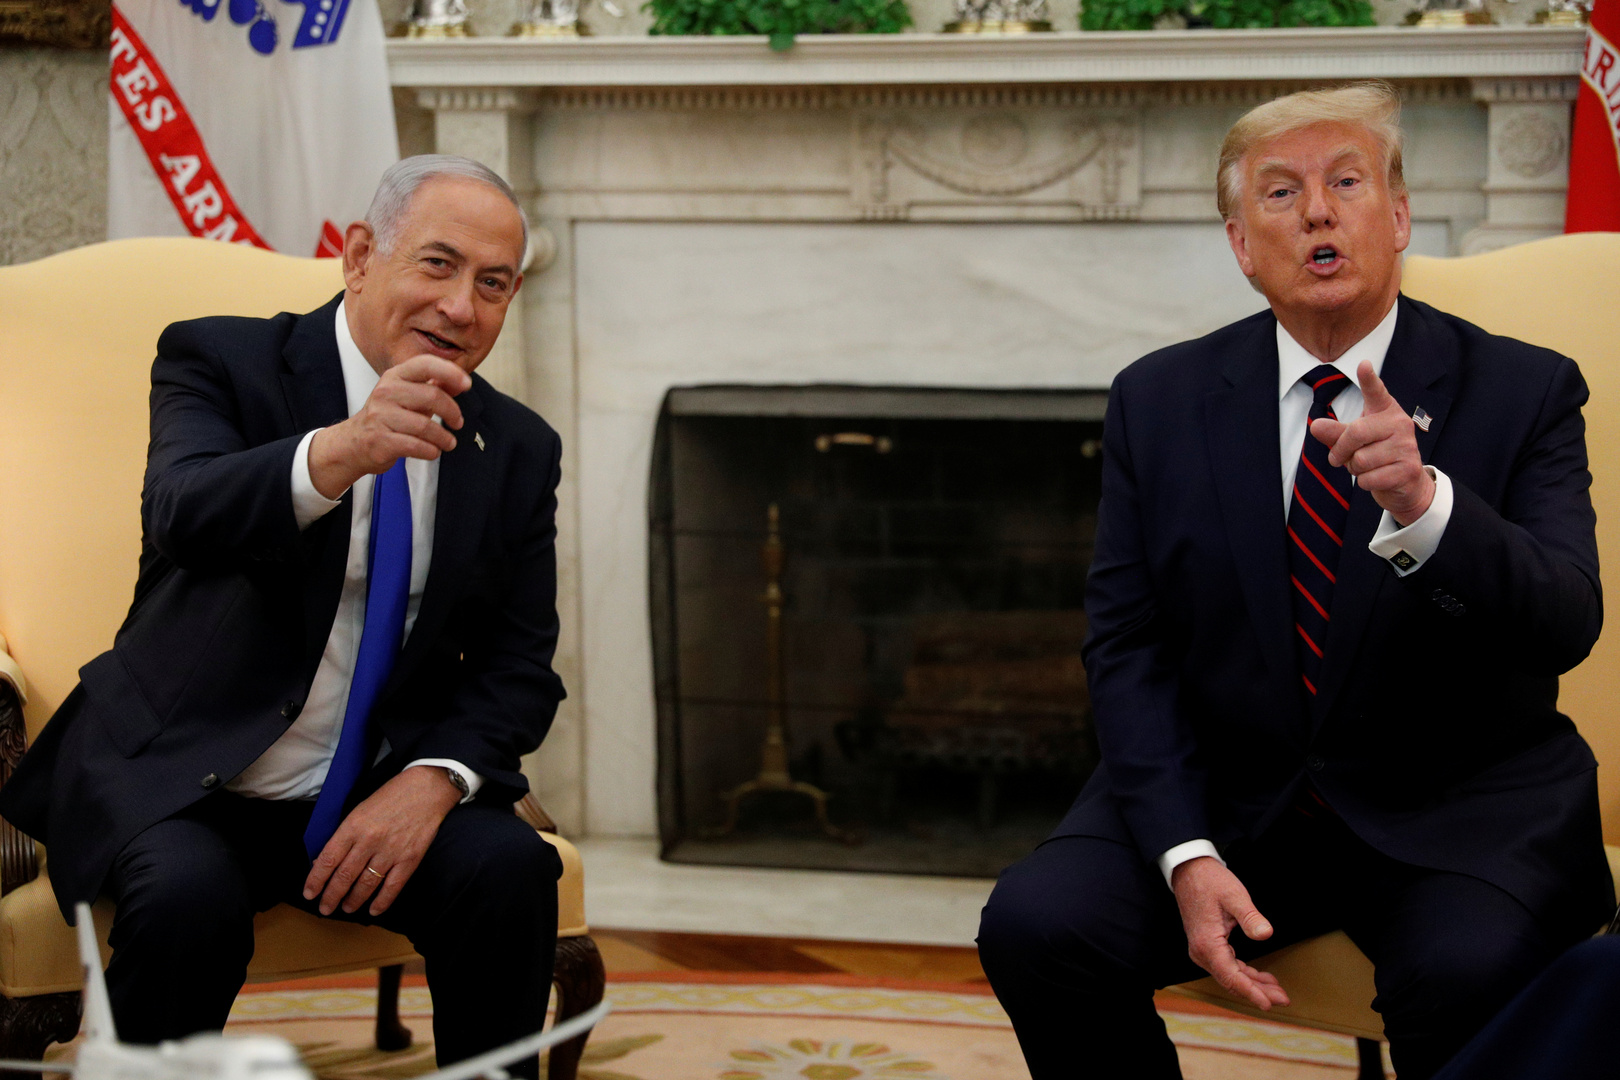 Netanyahu removes a picture of himself with Trump from his Facebook page